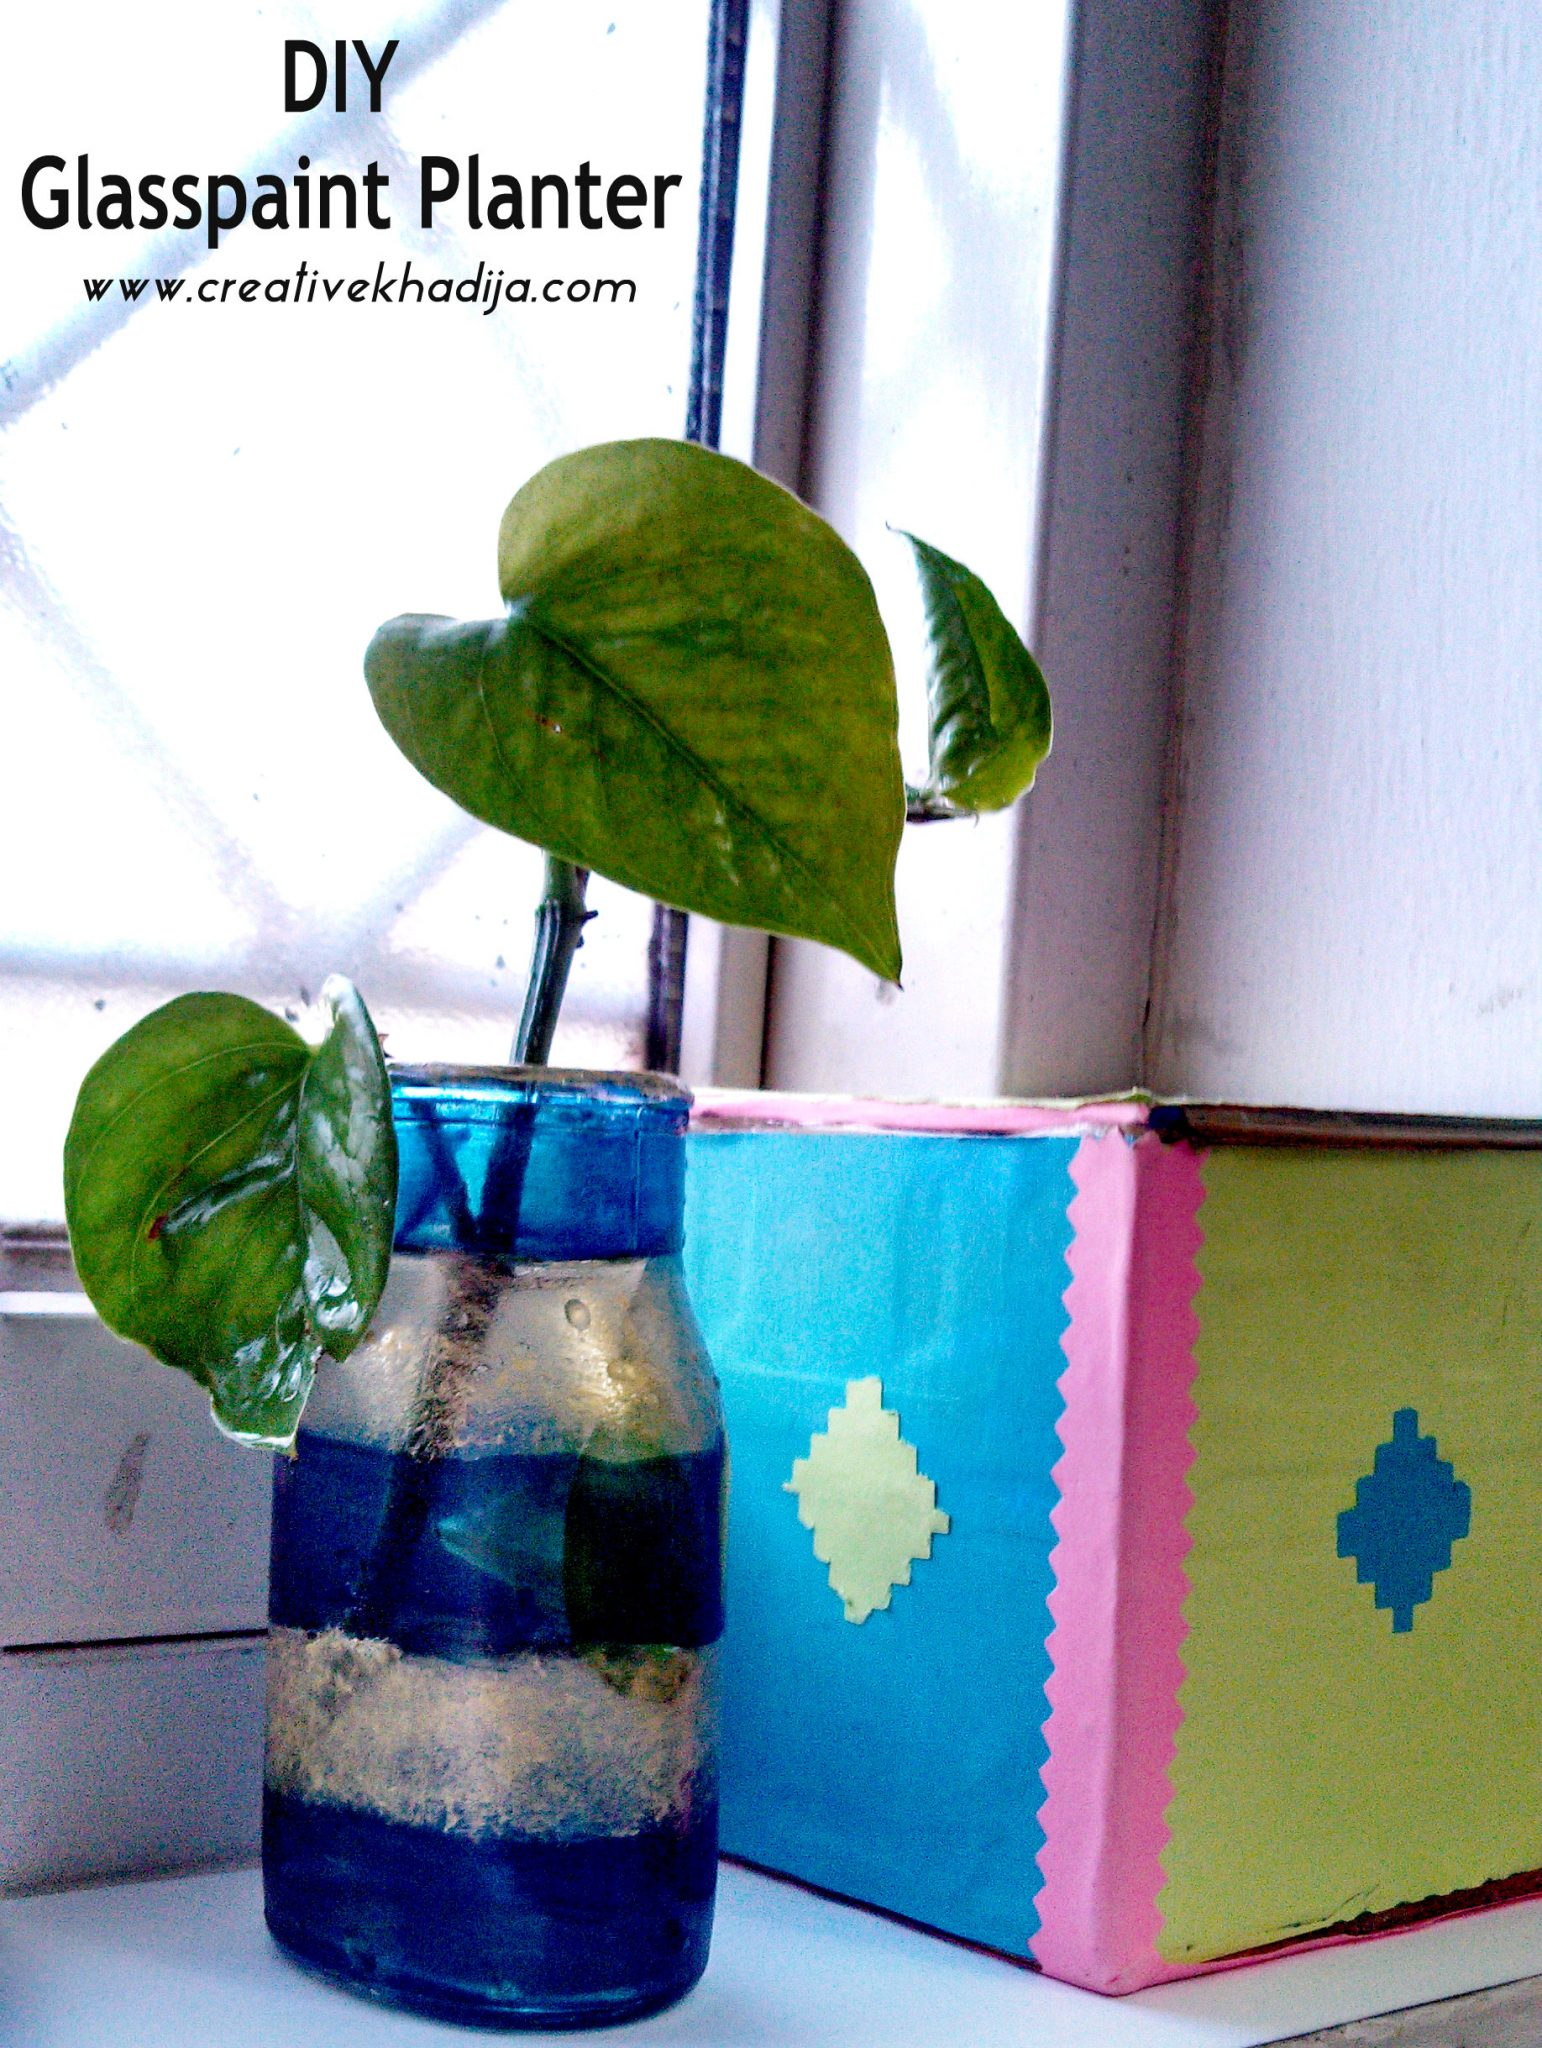 DIY glassPaint Planter Pot